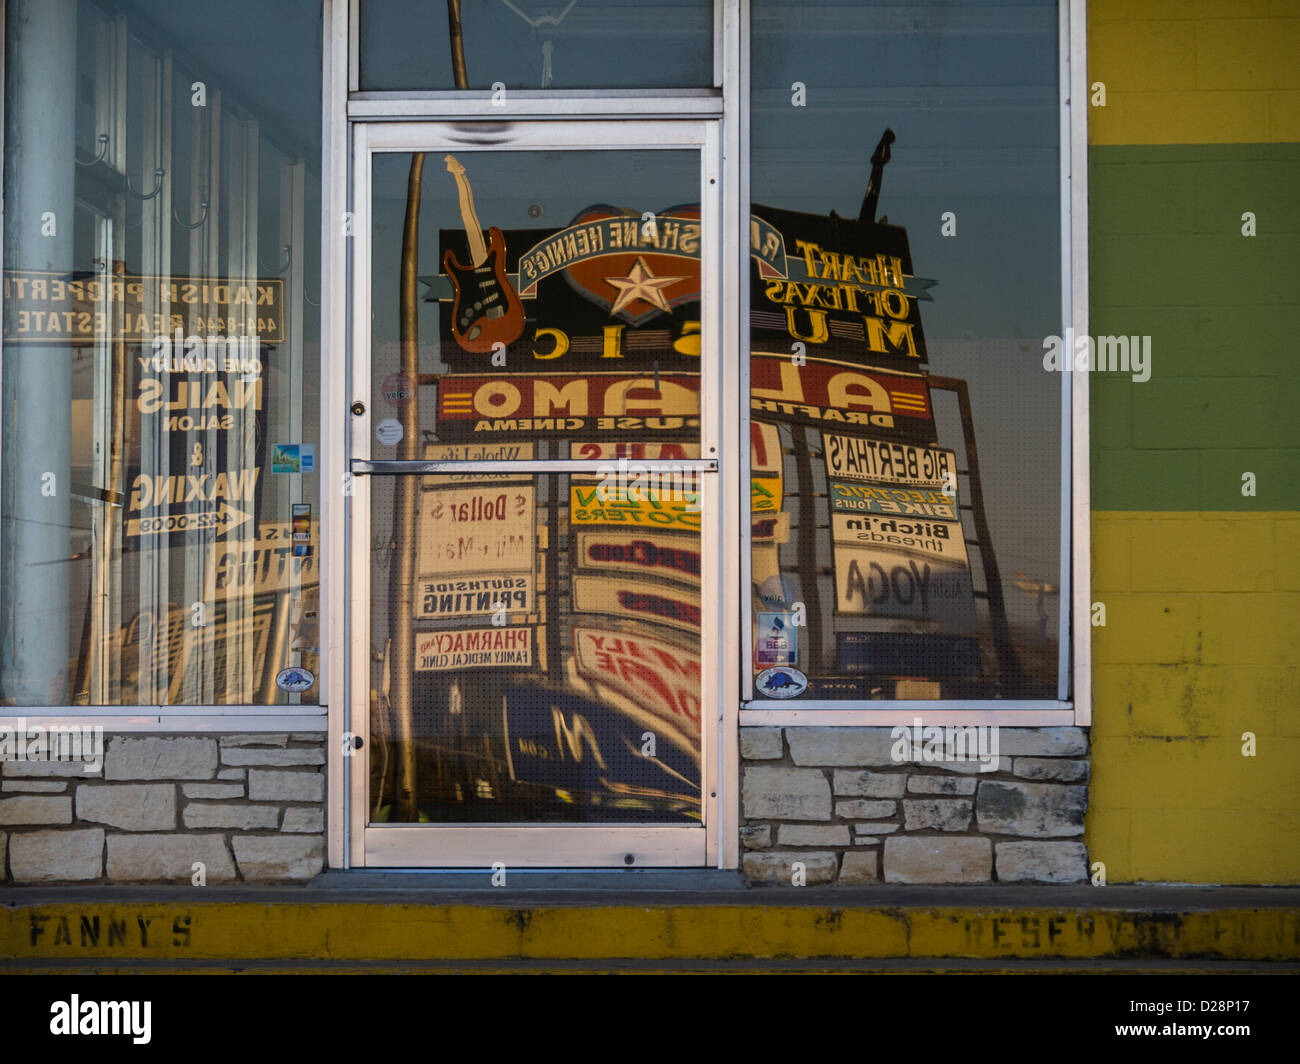 Reflections of the past - vintage Alamo Drafthouse sign in Austin, Texas reflected through the windows of empty - Stock Image